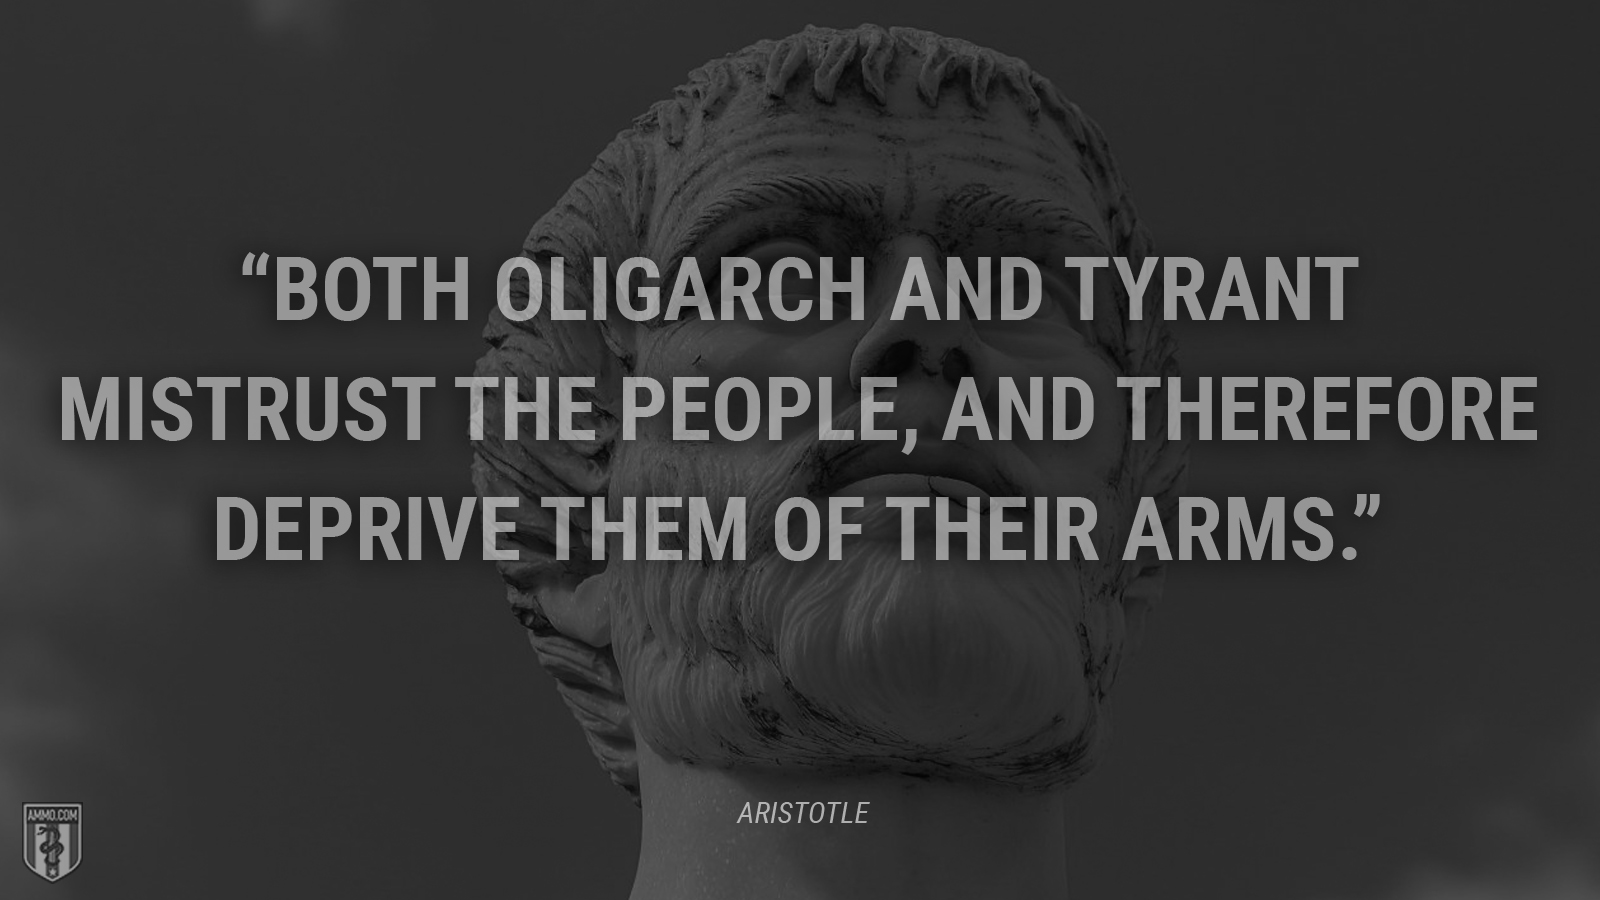 """Both oligarch and tyrant mistrust the people, and therefore deprive them of their arms."" - Aristotle"